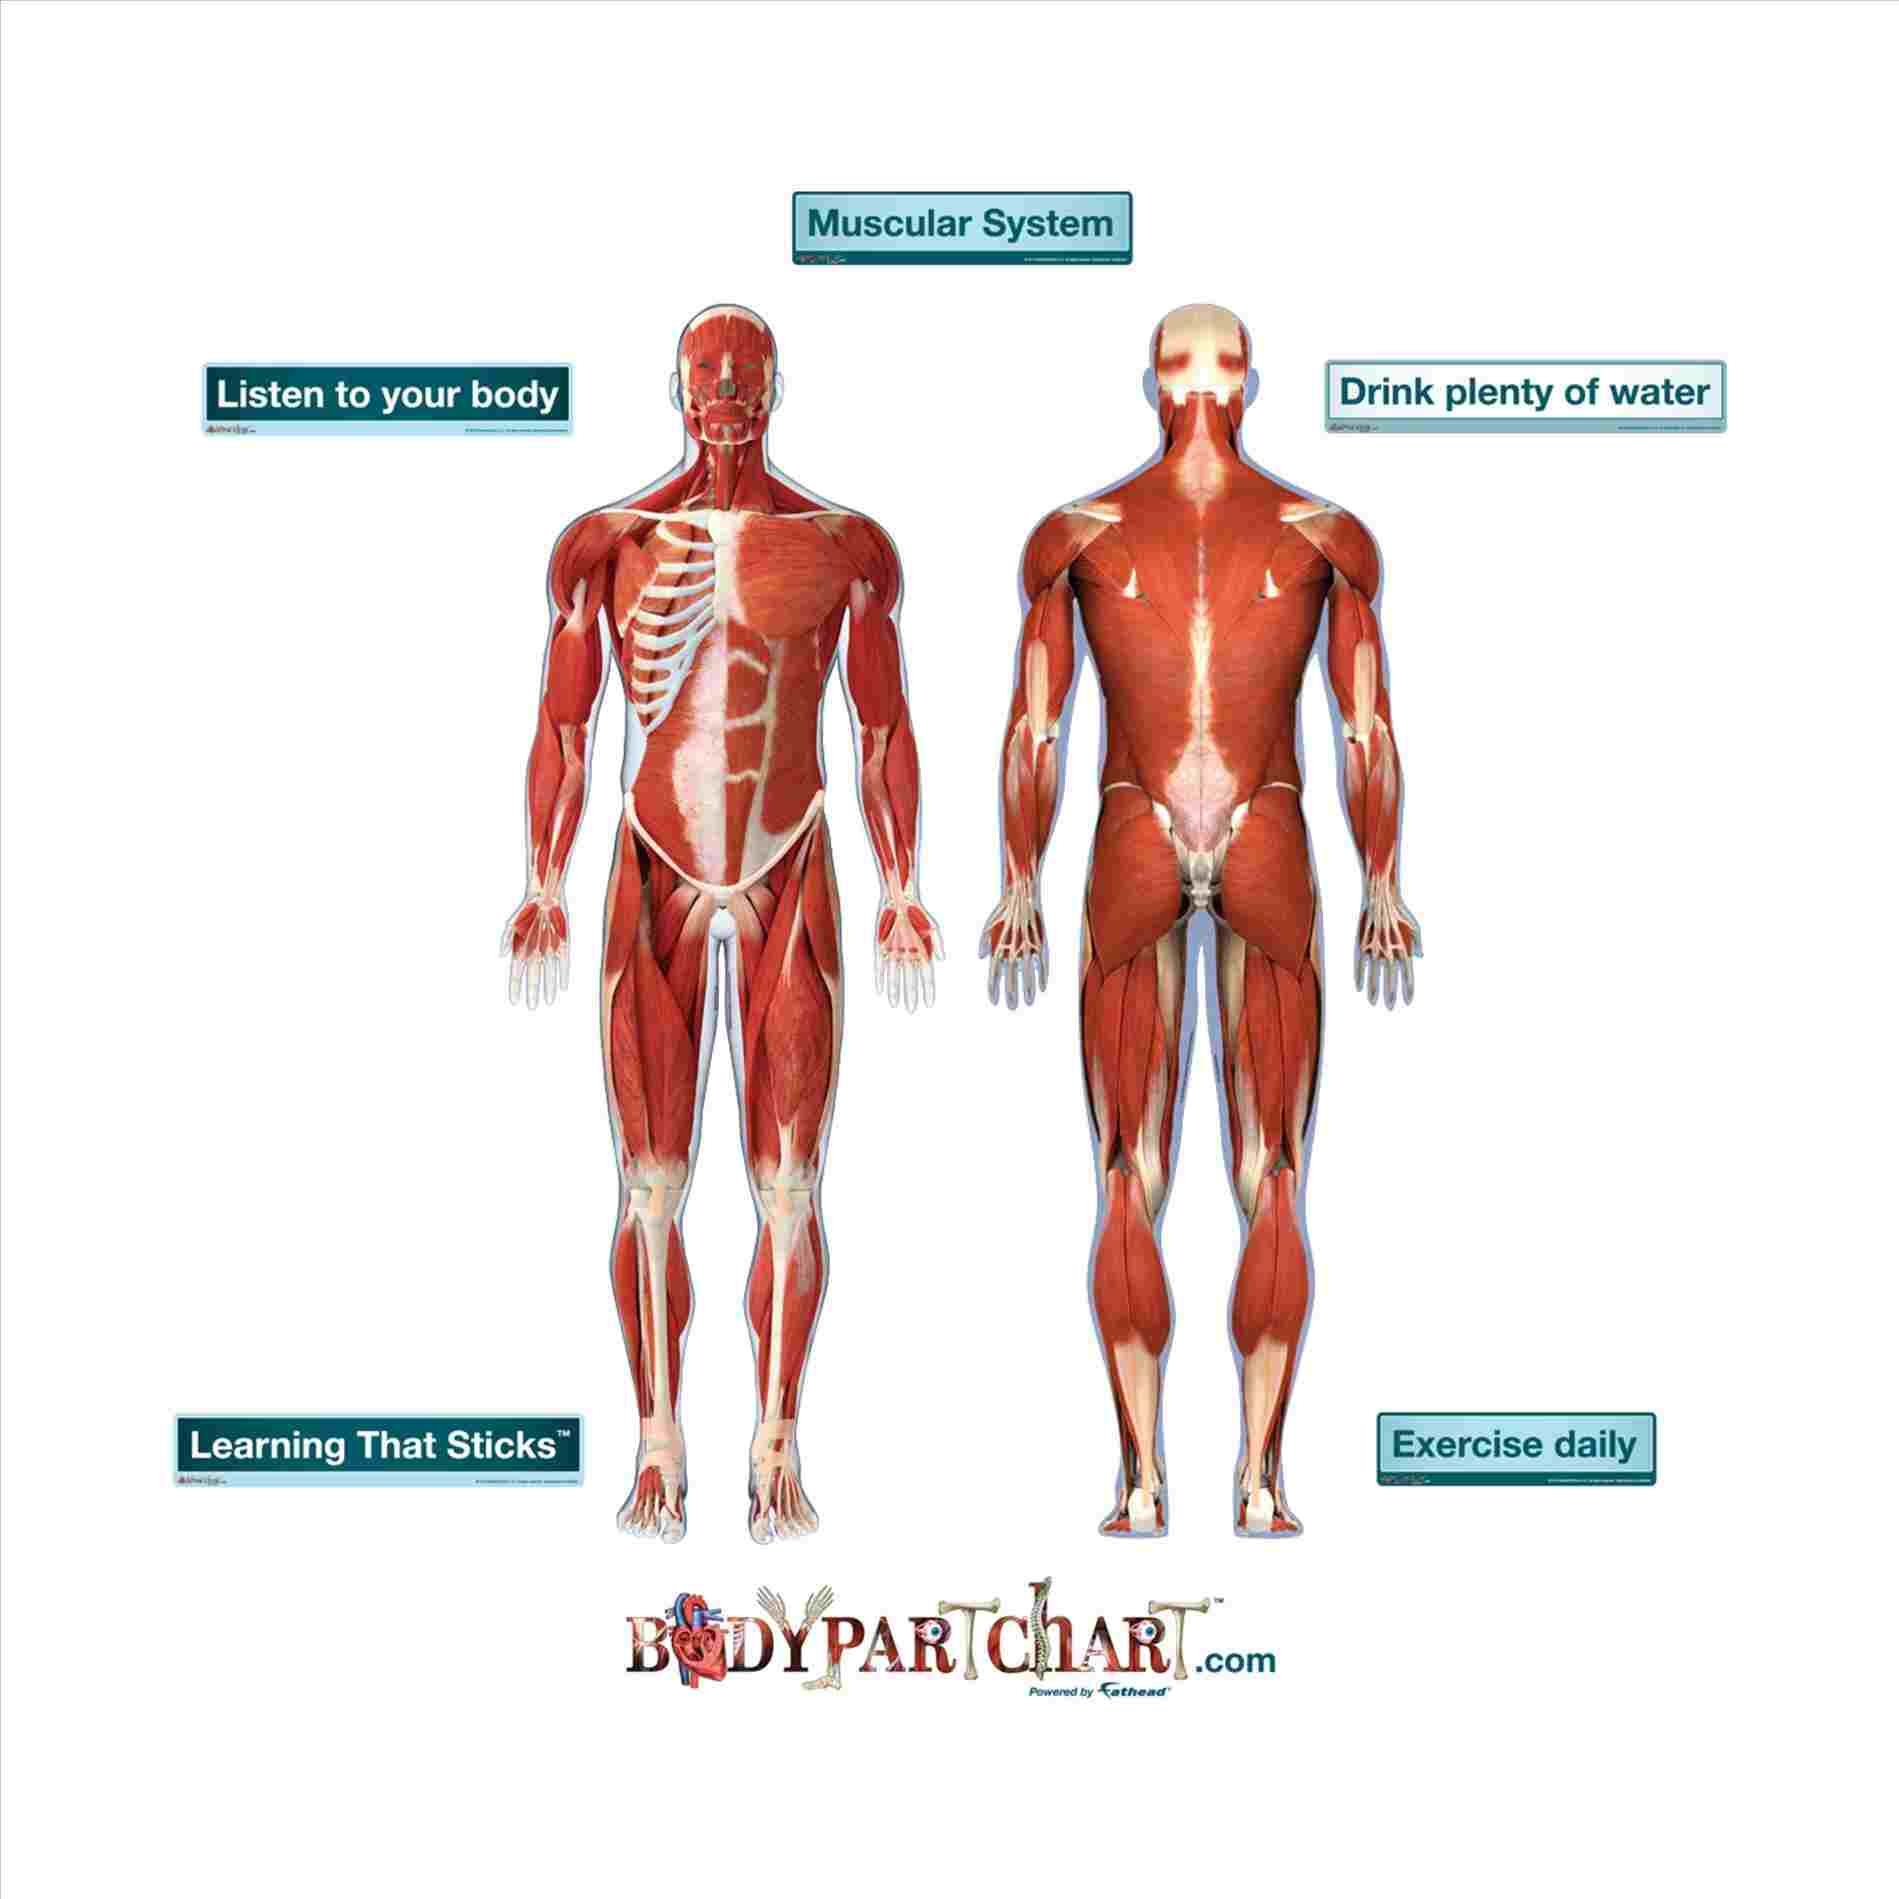 Human Muscle Diagram Body Muscle System Diagram Anatomy Body